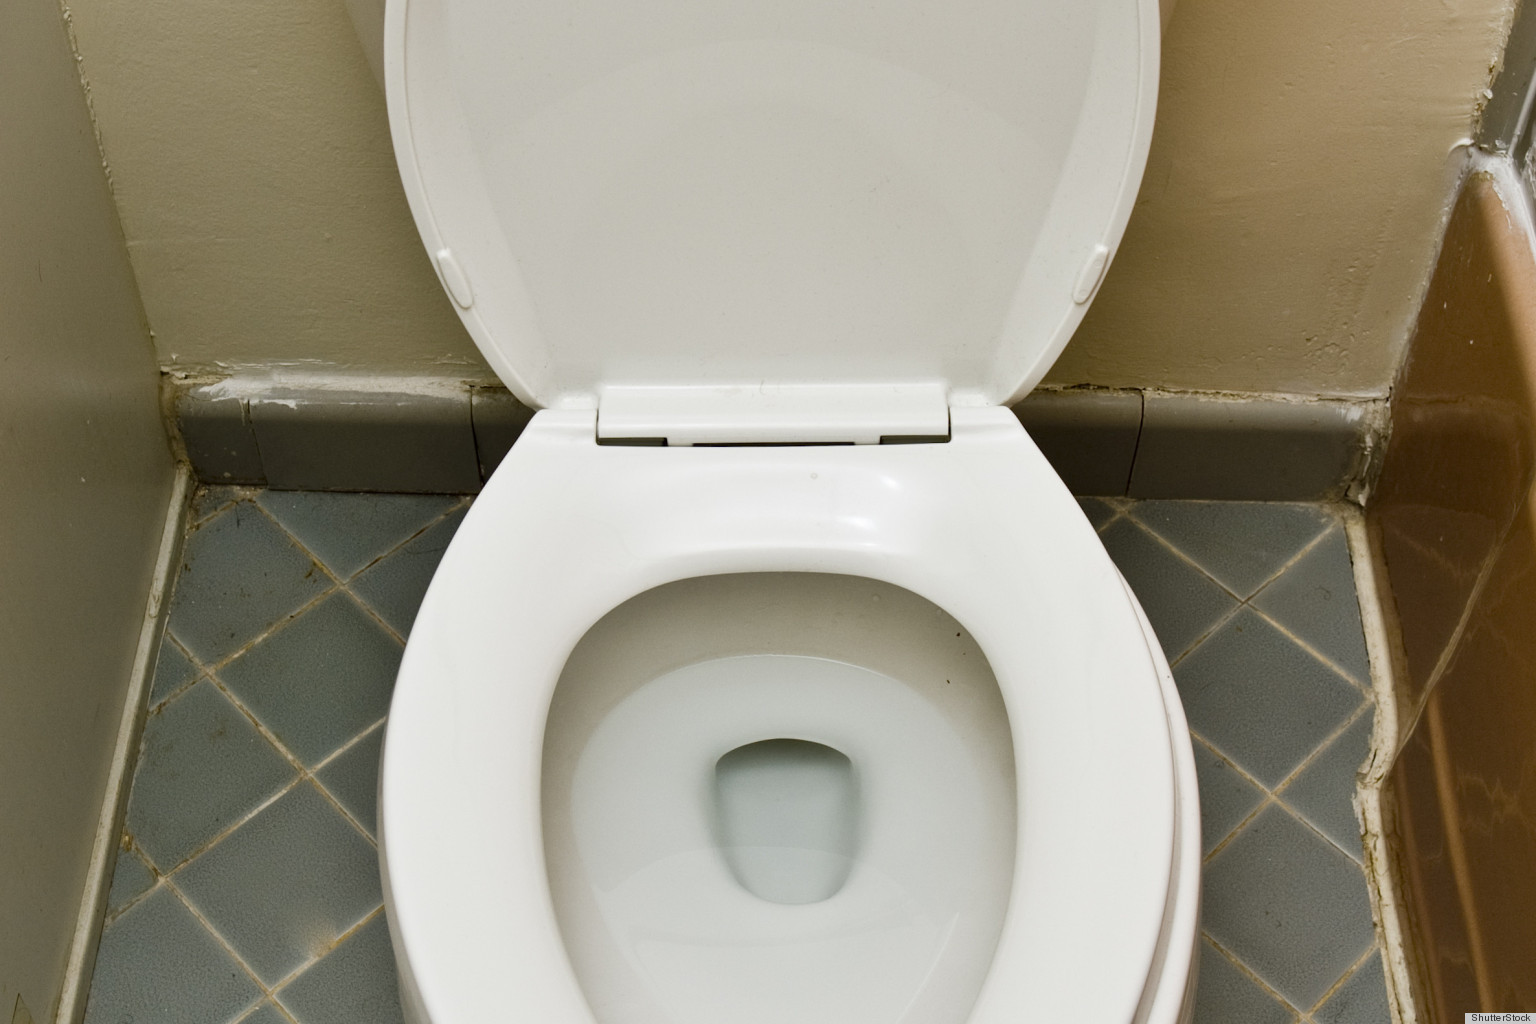 Remove Rust Stains From Your Toilet With A Pumice Stone To Make It ...